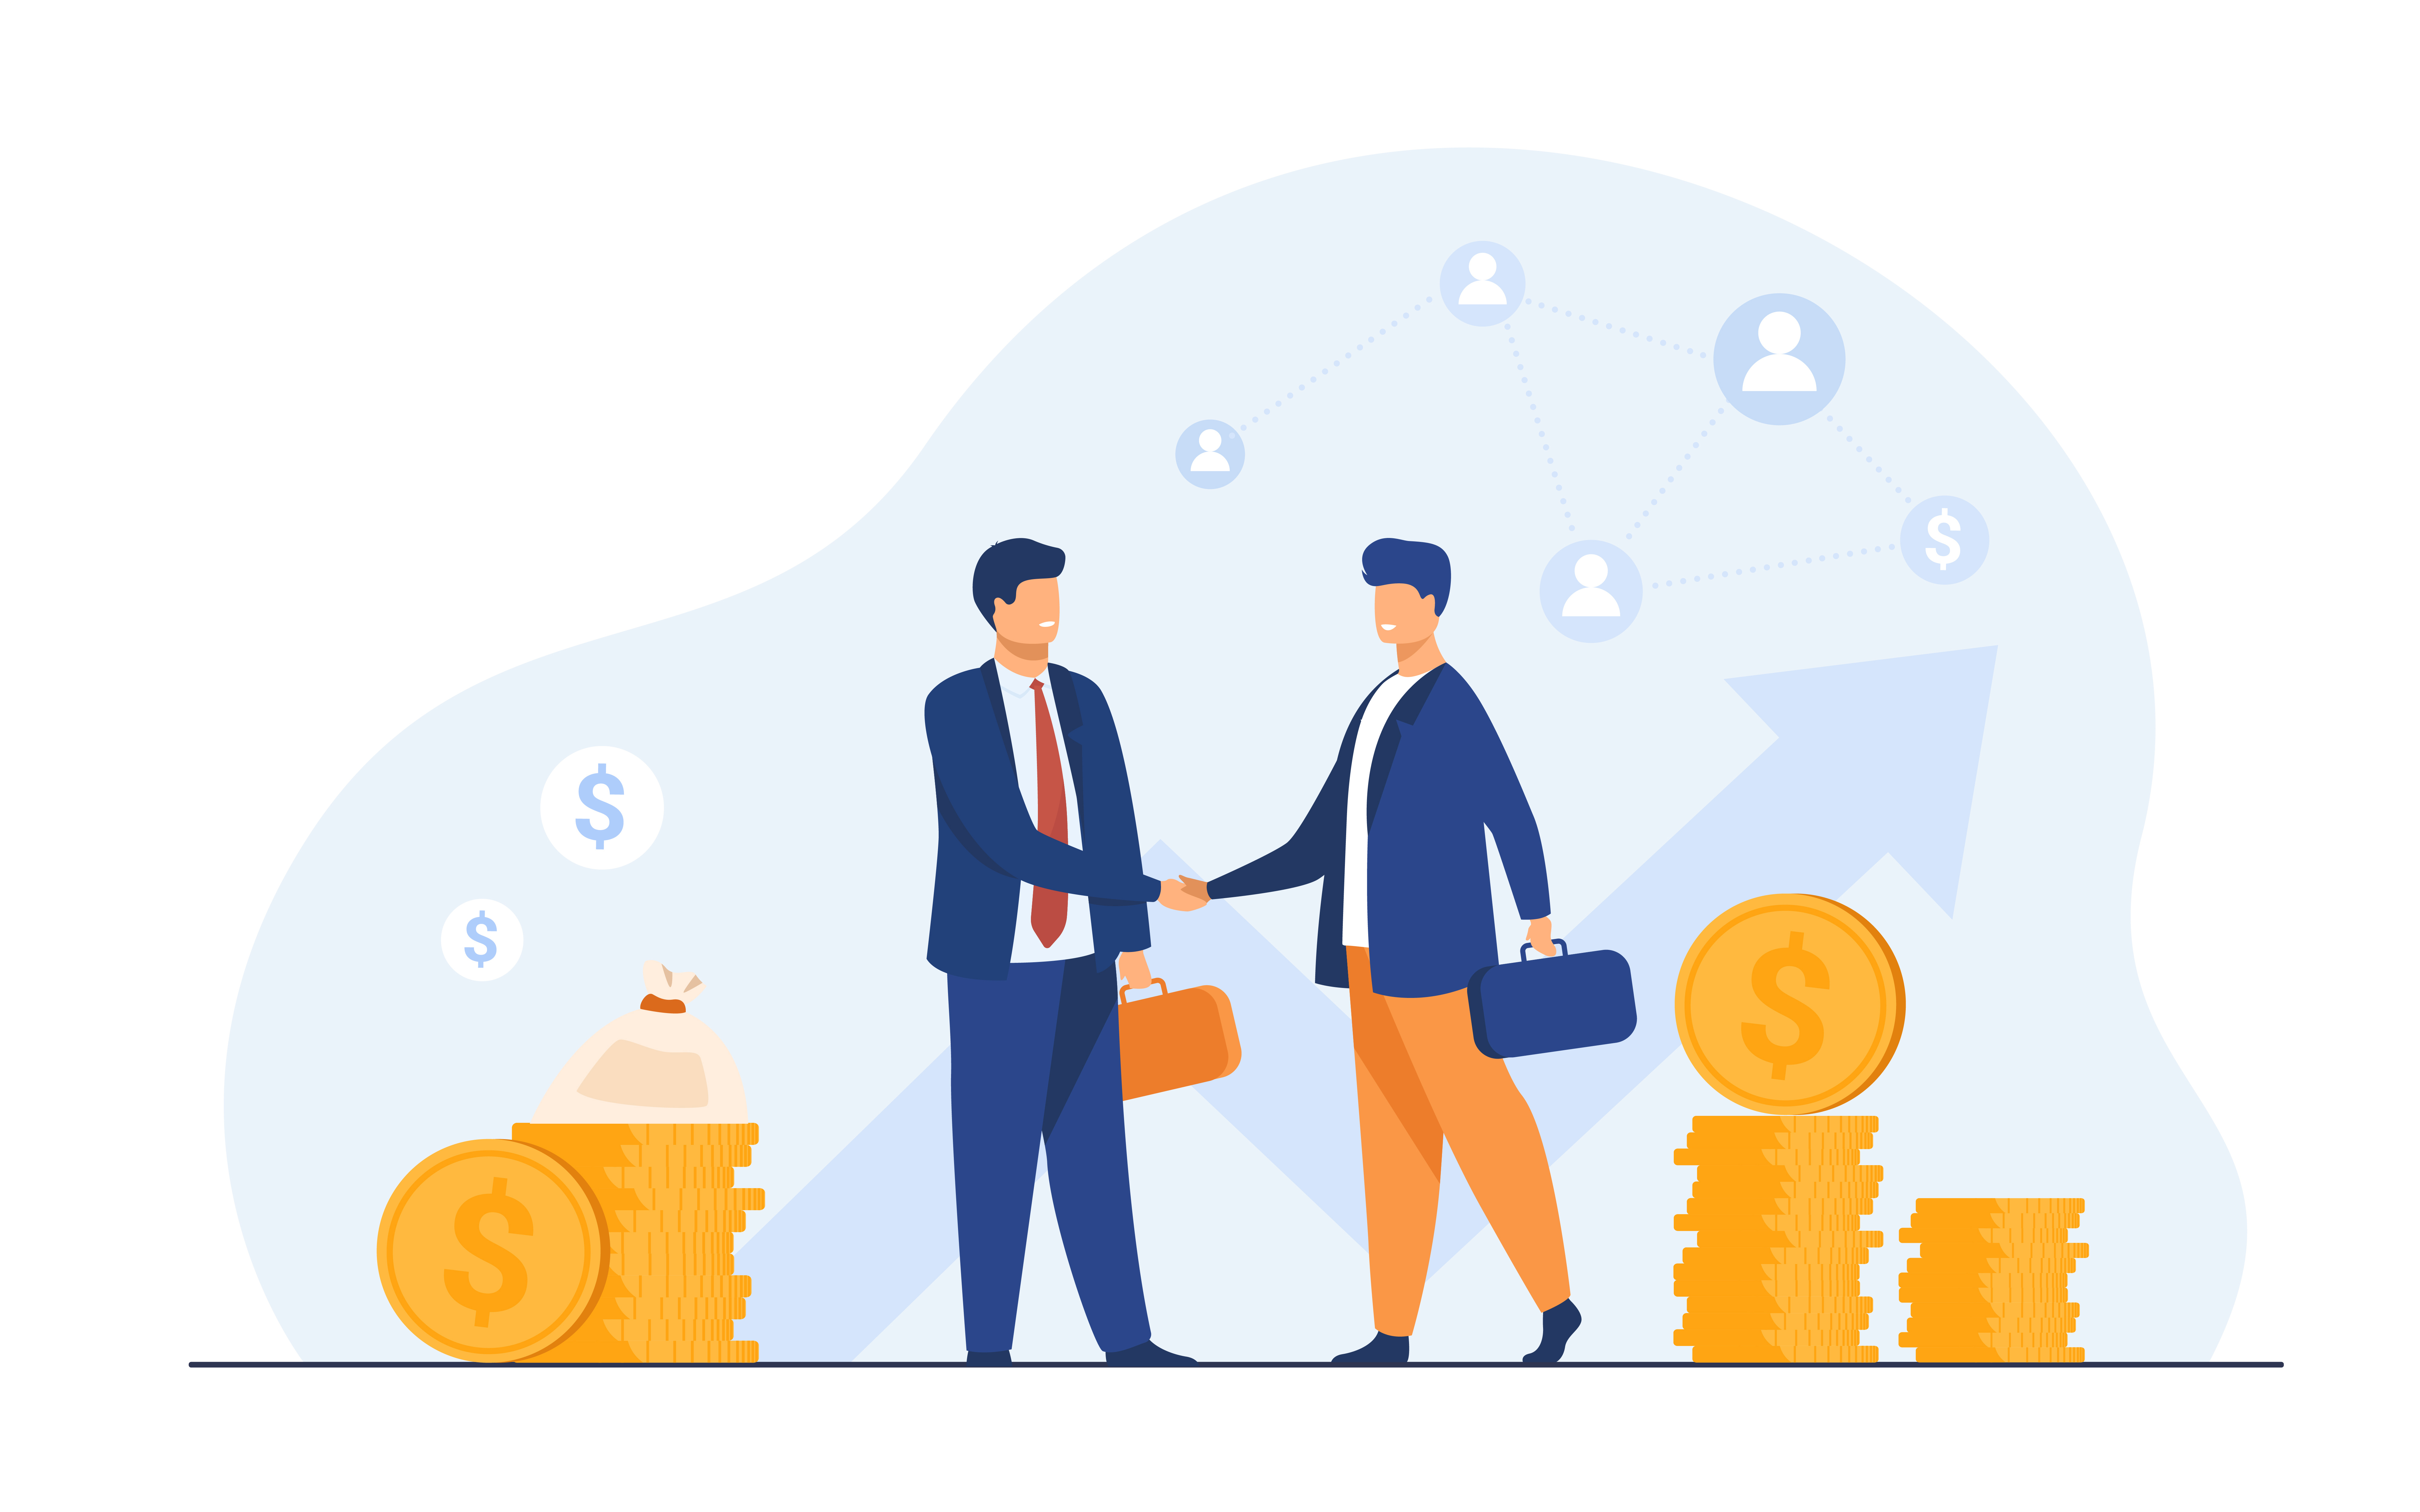 Two business partners handshaking flat vector illustration. Cartoon businessmen concluding agreement for success. Partnership, teamwork and negotiation concept